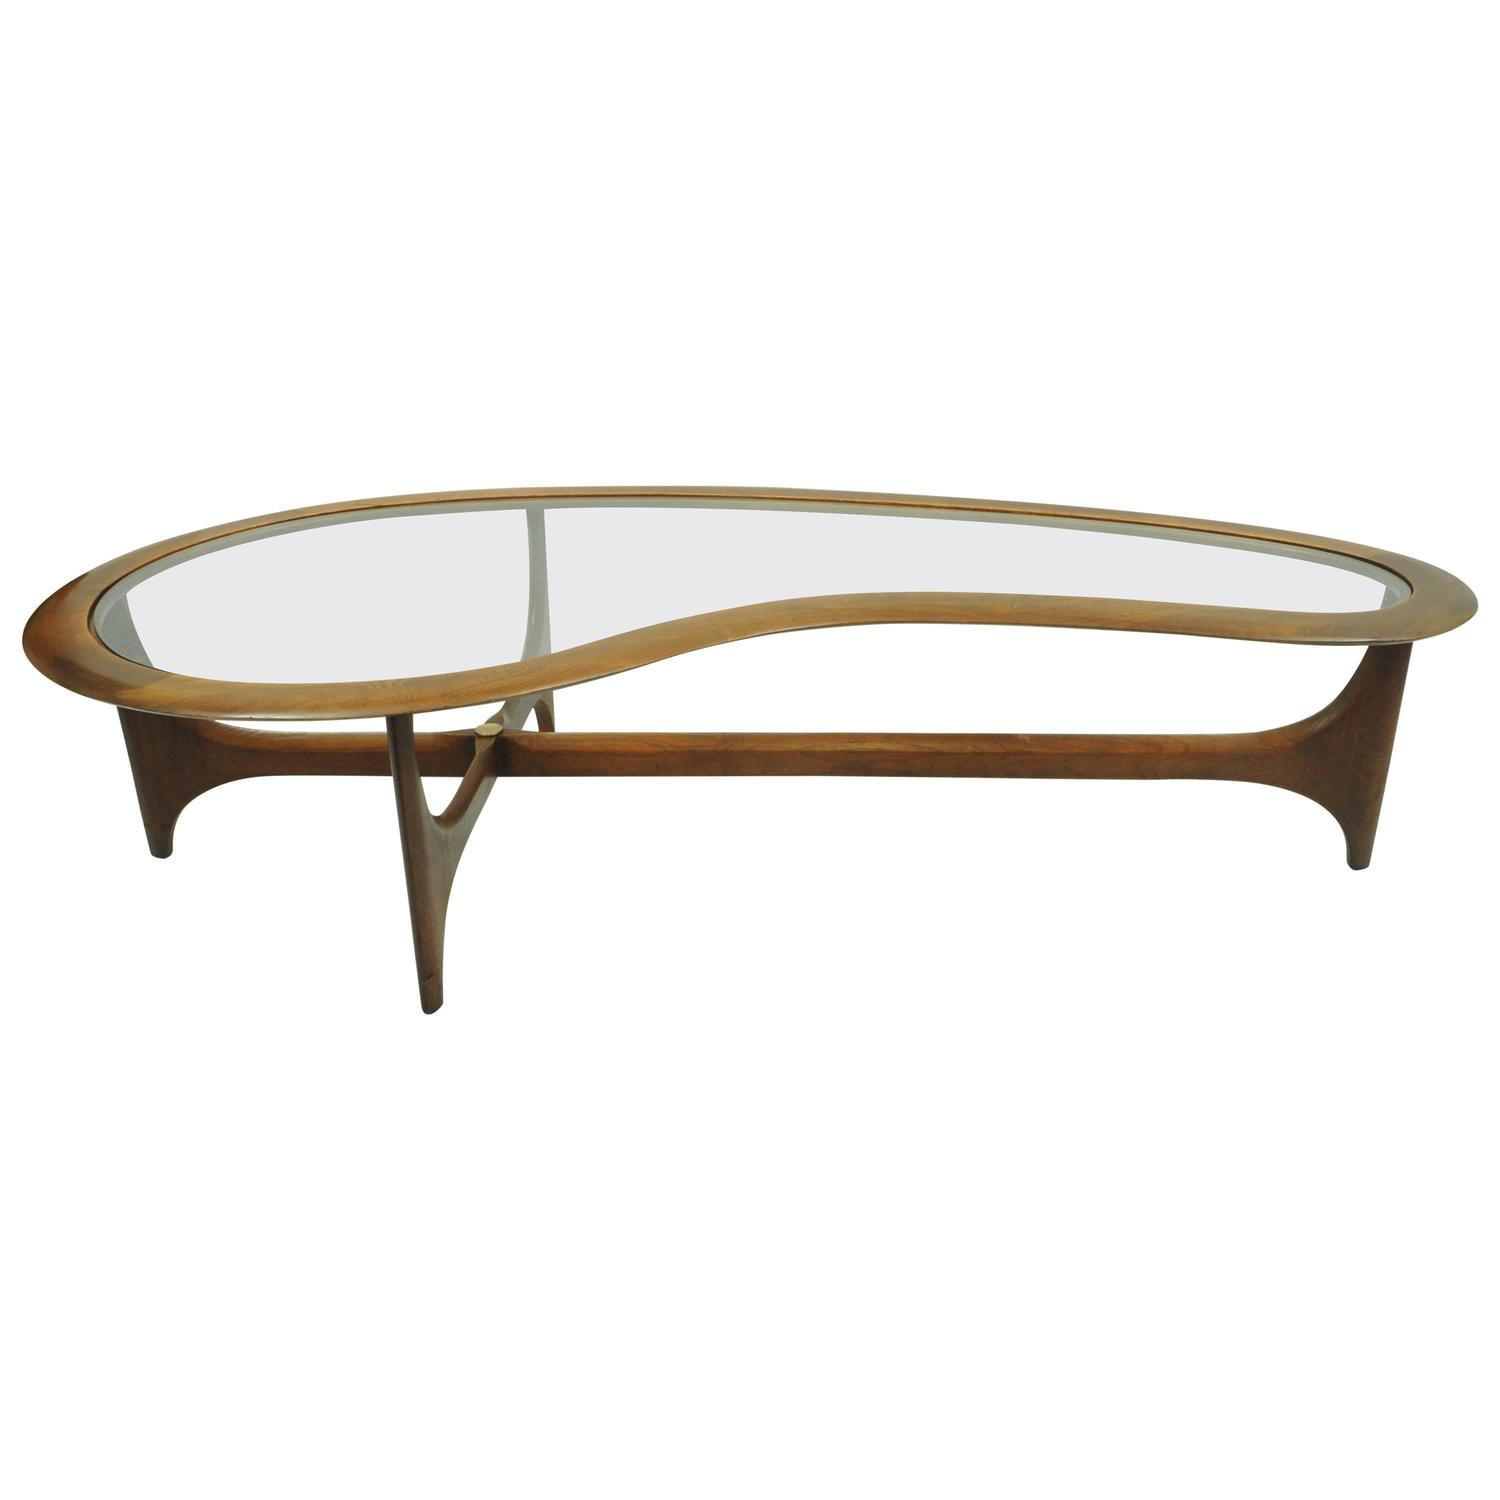 Vintage Lane Kidney Shaped Boomerang Walnut and Glass Coffee Table